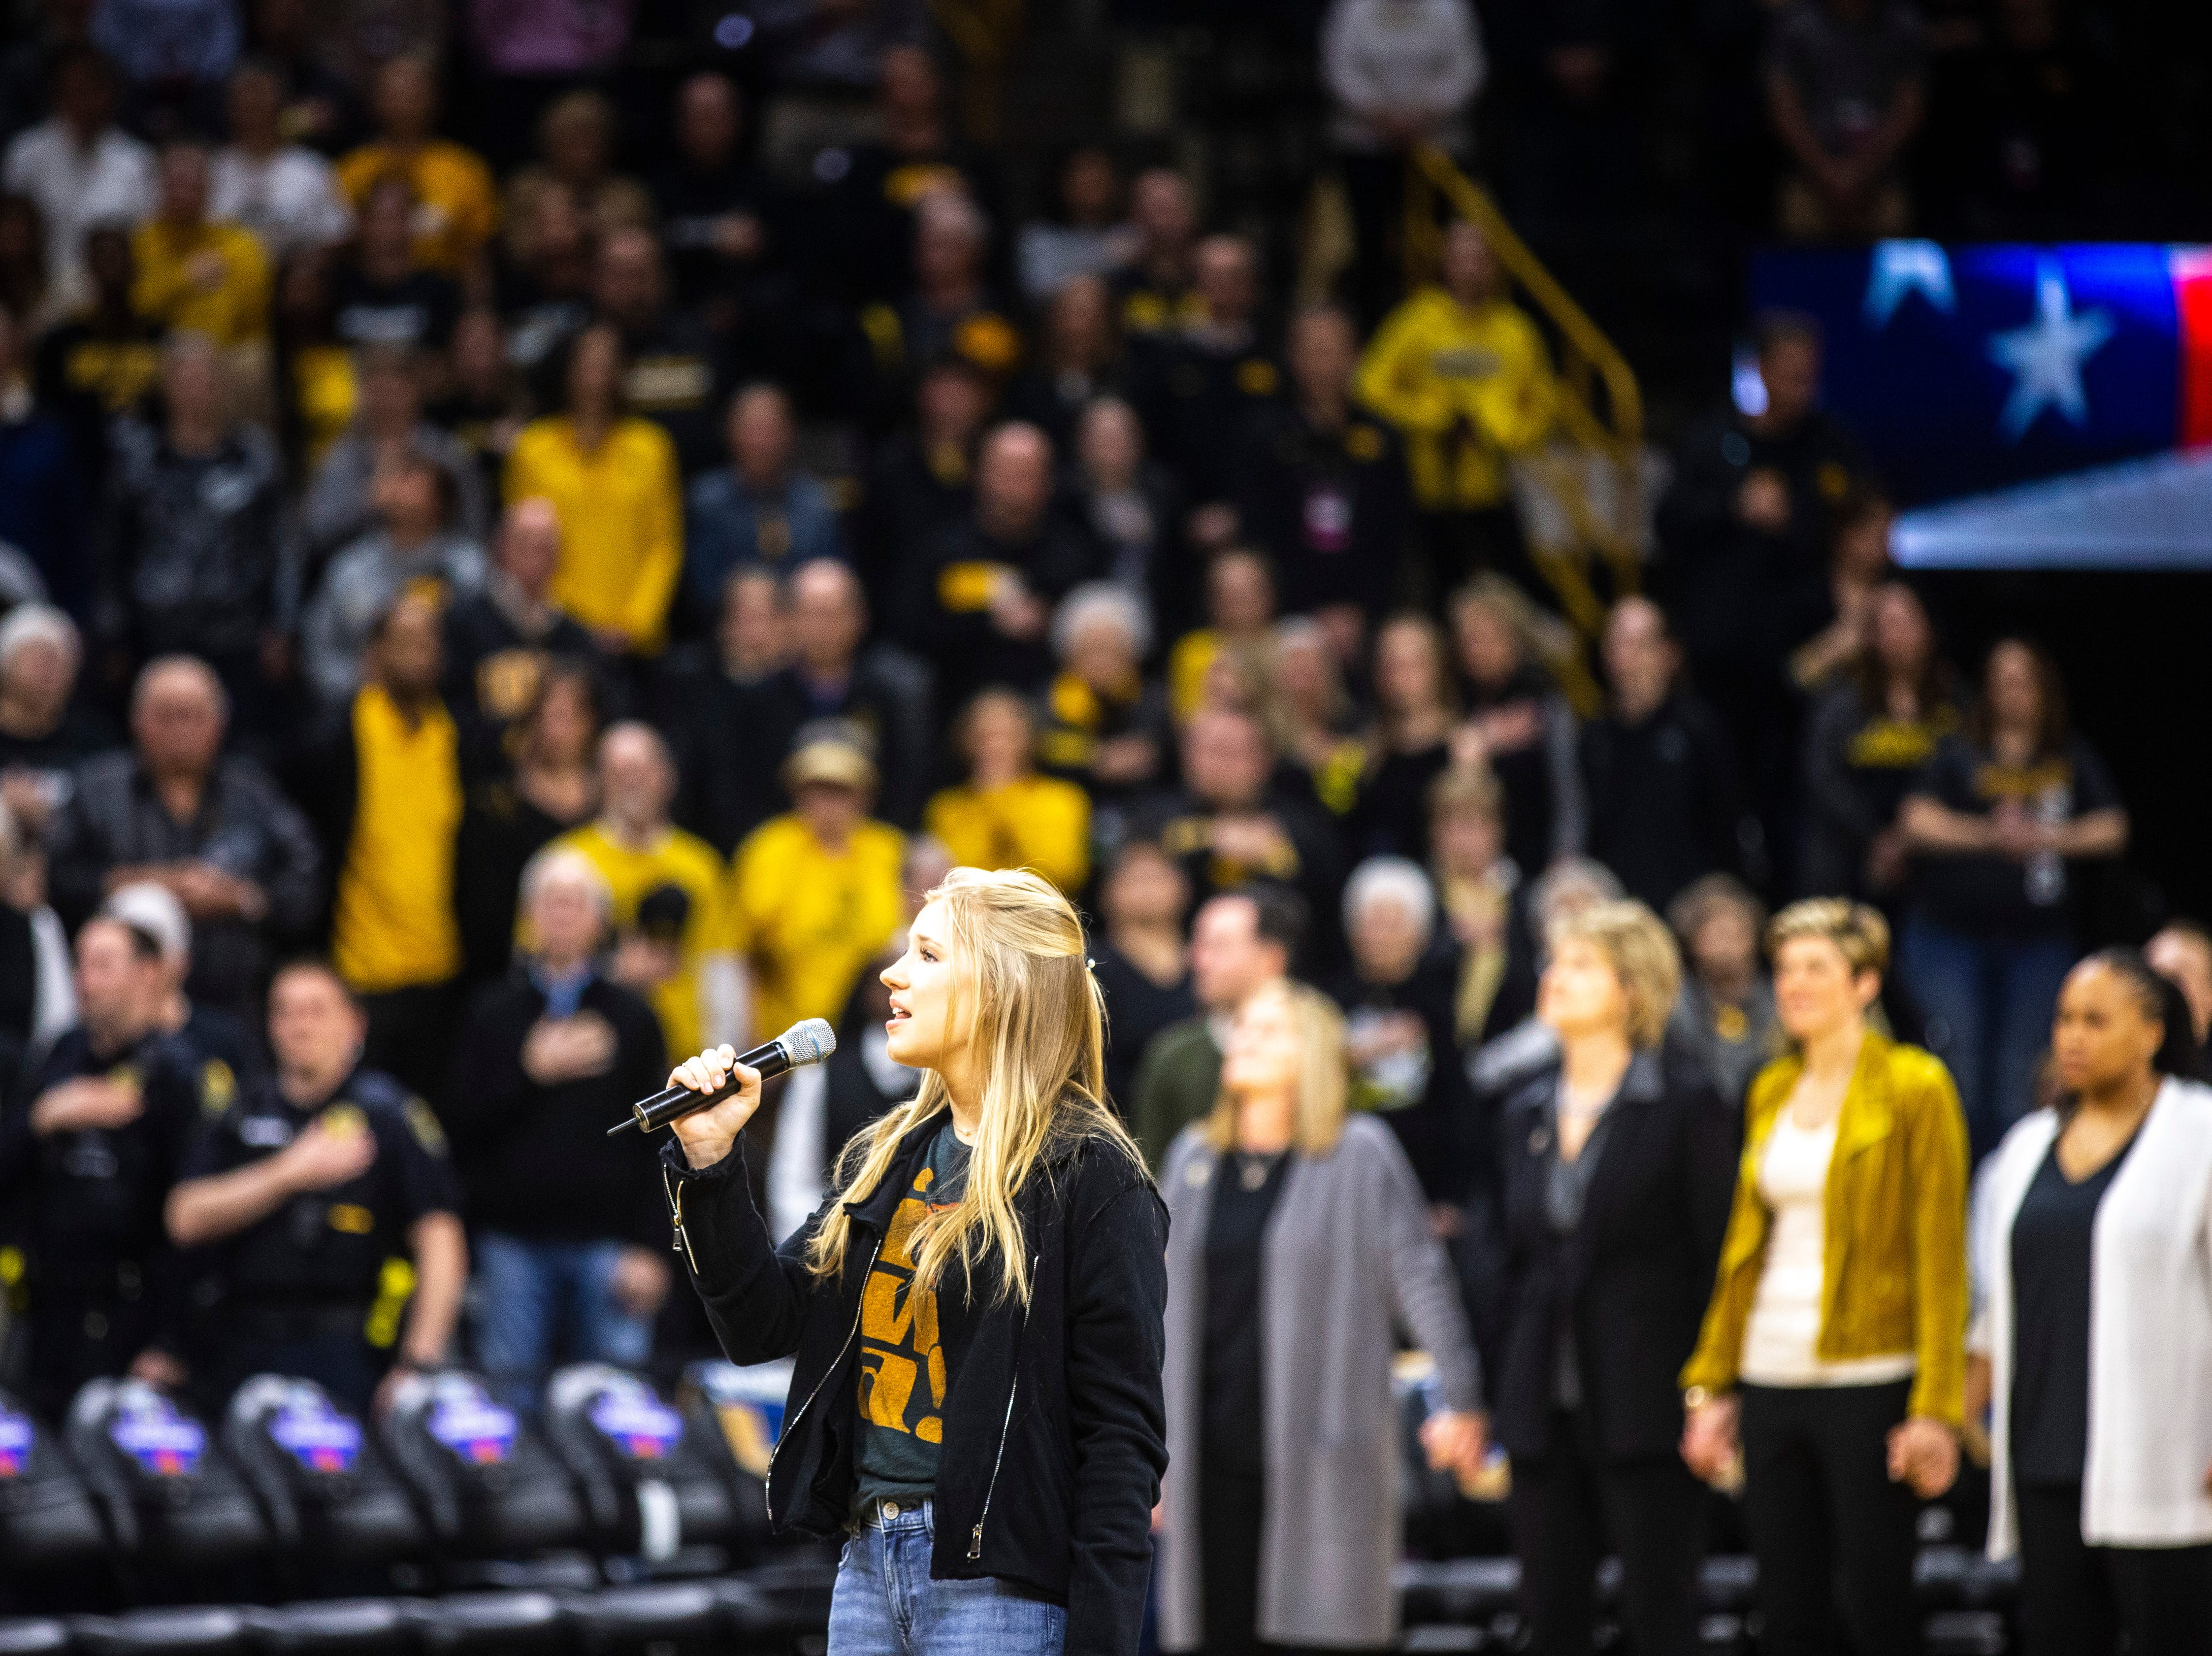 Emma Bluder, the daughter of Iowa head coach Lisa Bluder, sings the national anthem during a NCAA women's basketball tournament second-round game, Sunday, March 24, 2019, at Carver-Hawkeye Arena in Iowa City, Iowa.